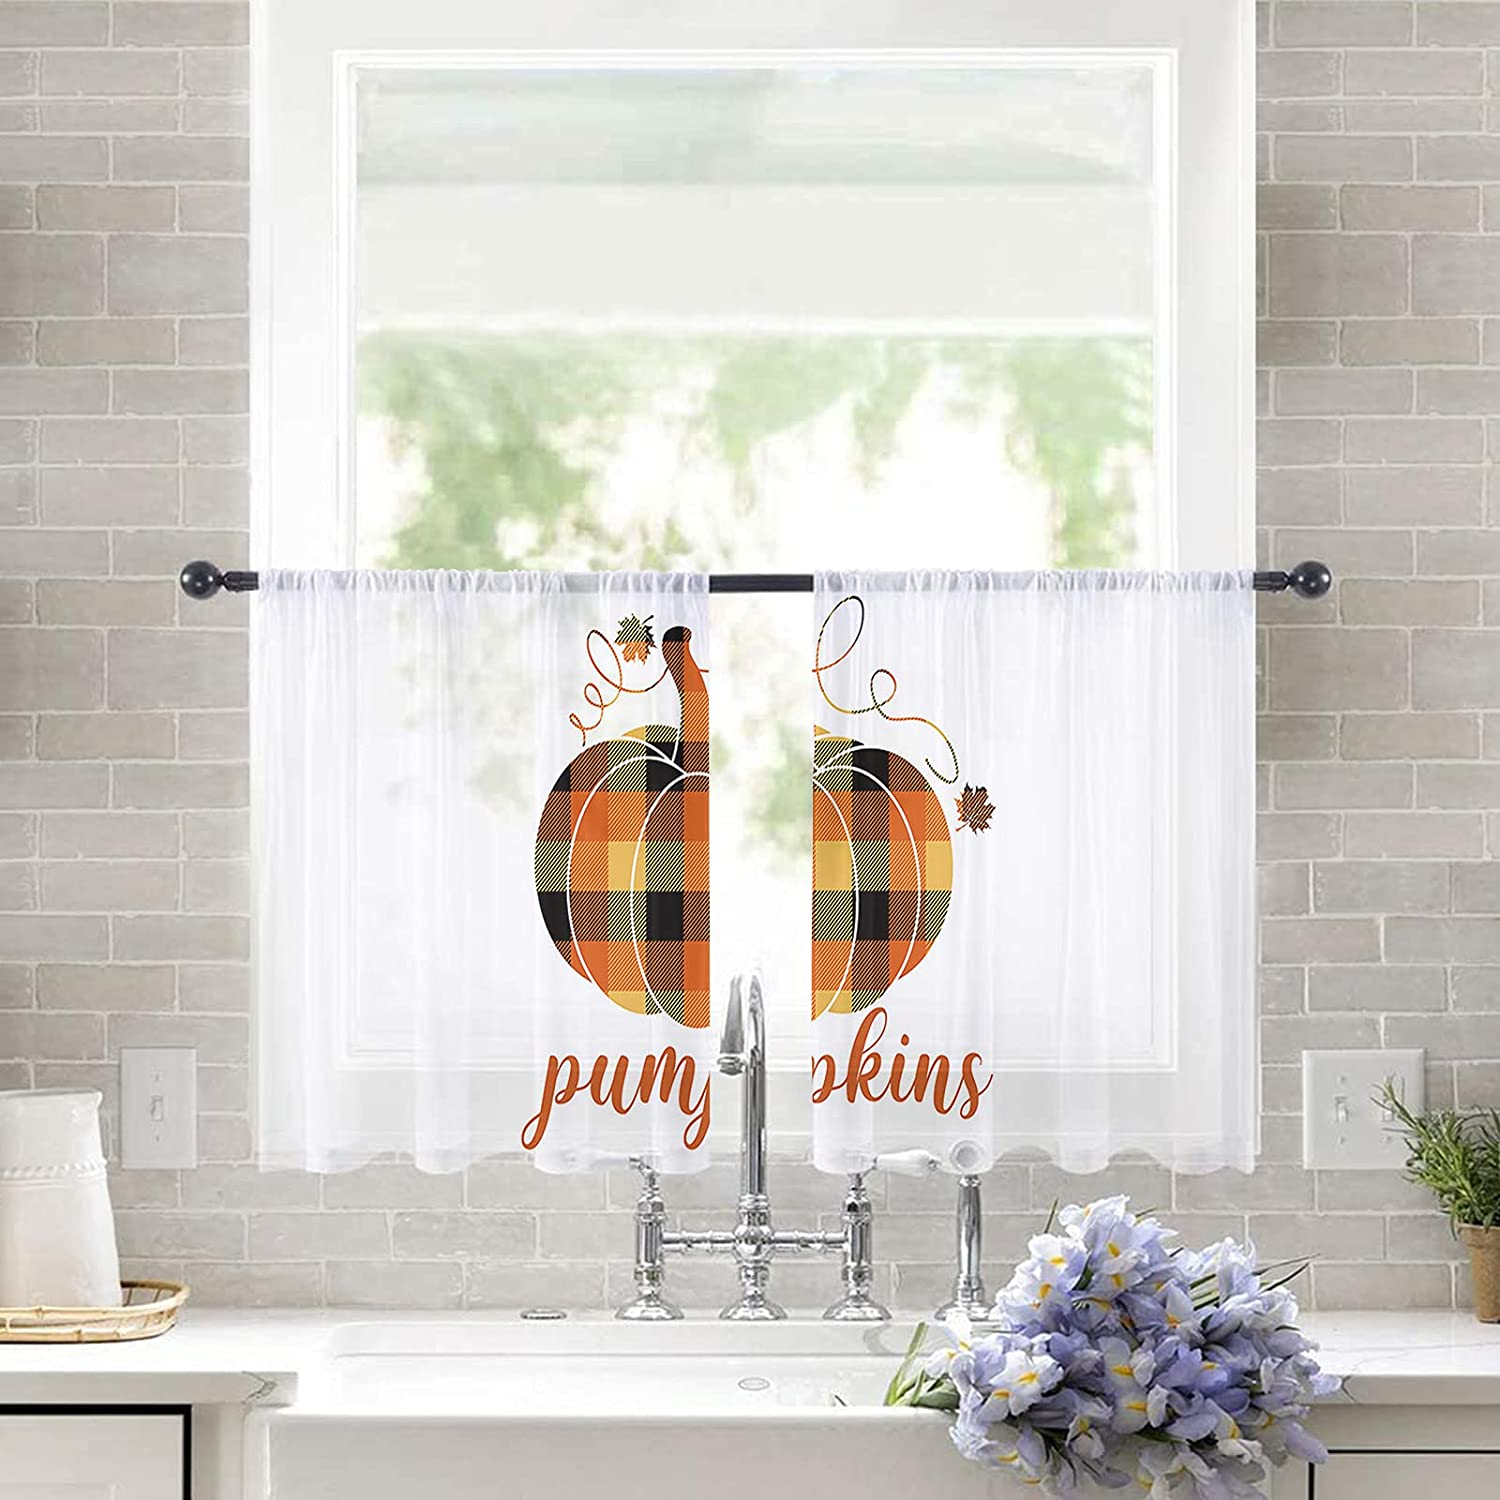 2pc Set Sheer Curtains Ranking TOP16 Ranking TOP2 for Bedroom Fall Windows Pocke Theme Rod